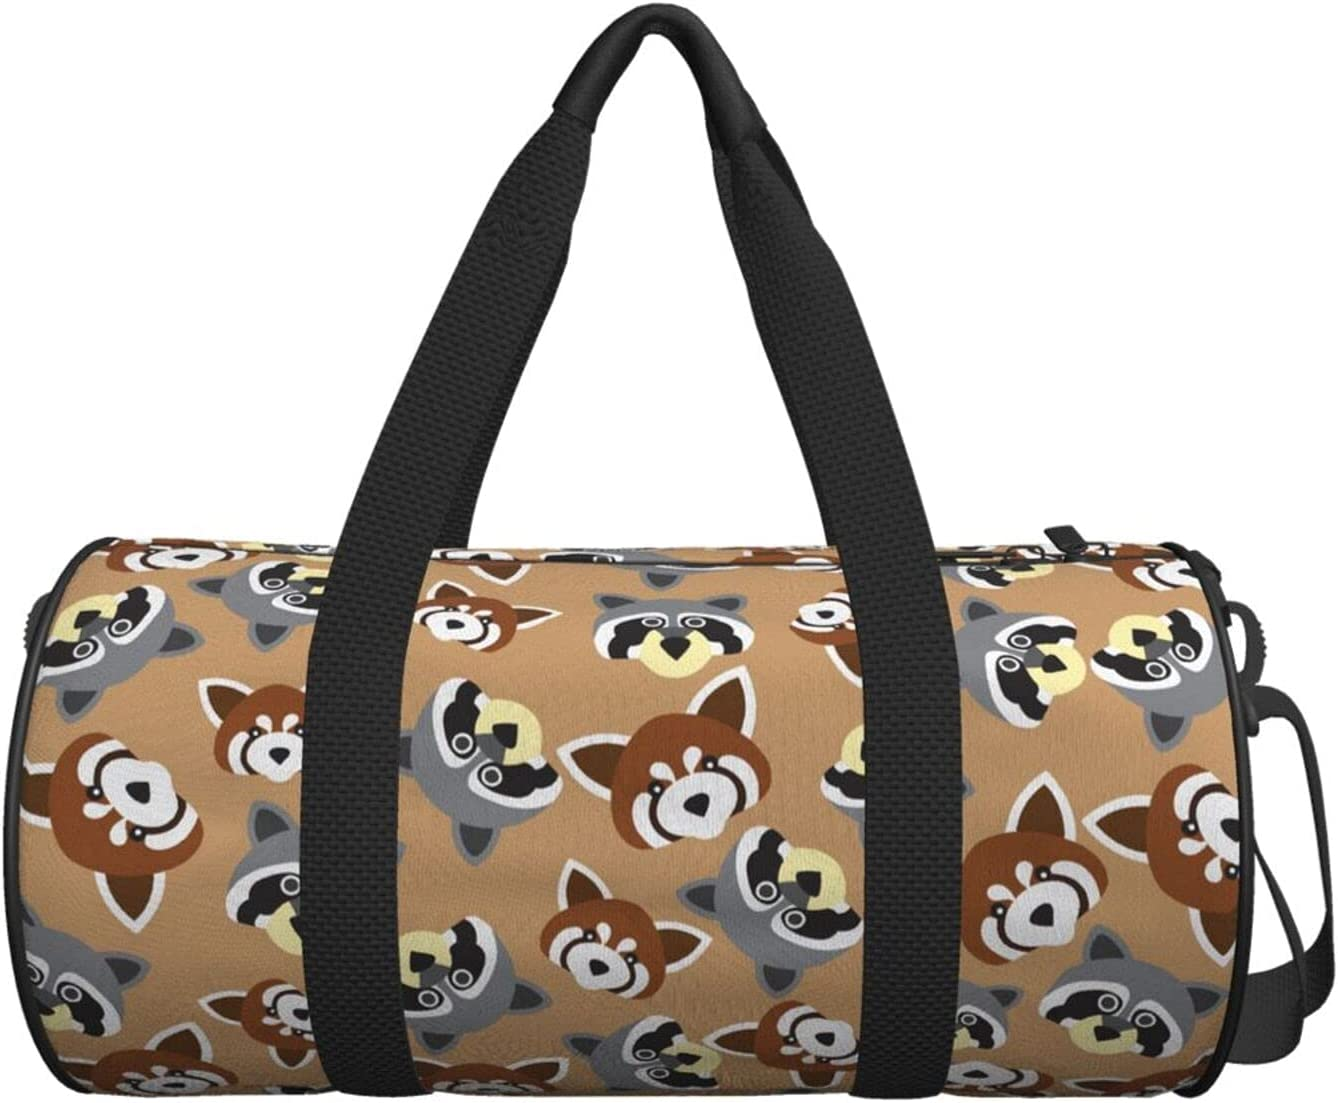 Canvas Duffle Bag Raccoon And Red Travel Duffel B New color New products, world's highest quality popular! Luggage Panda